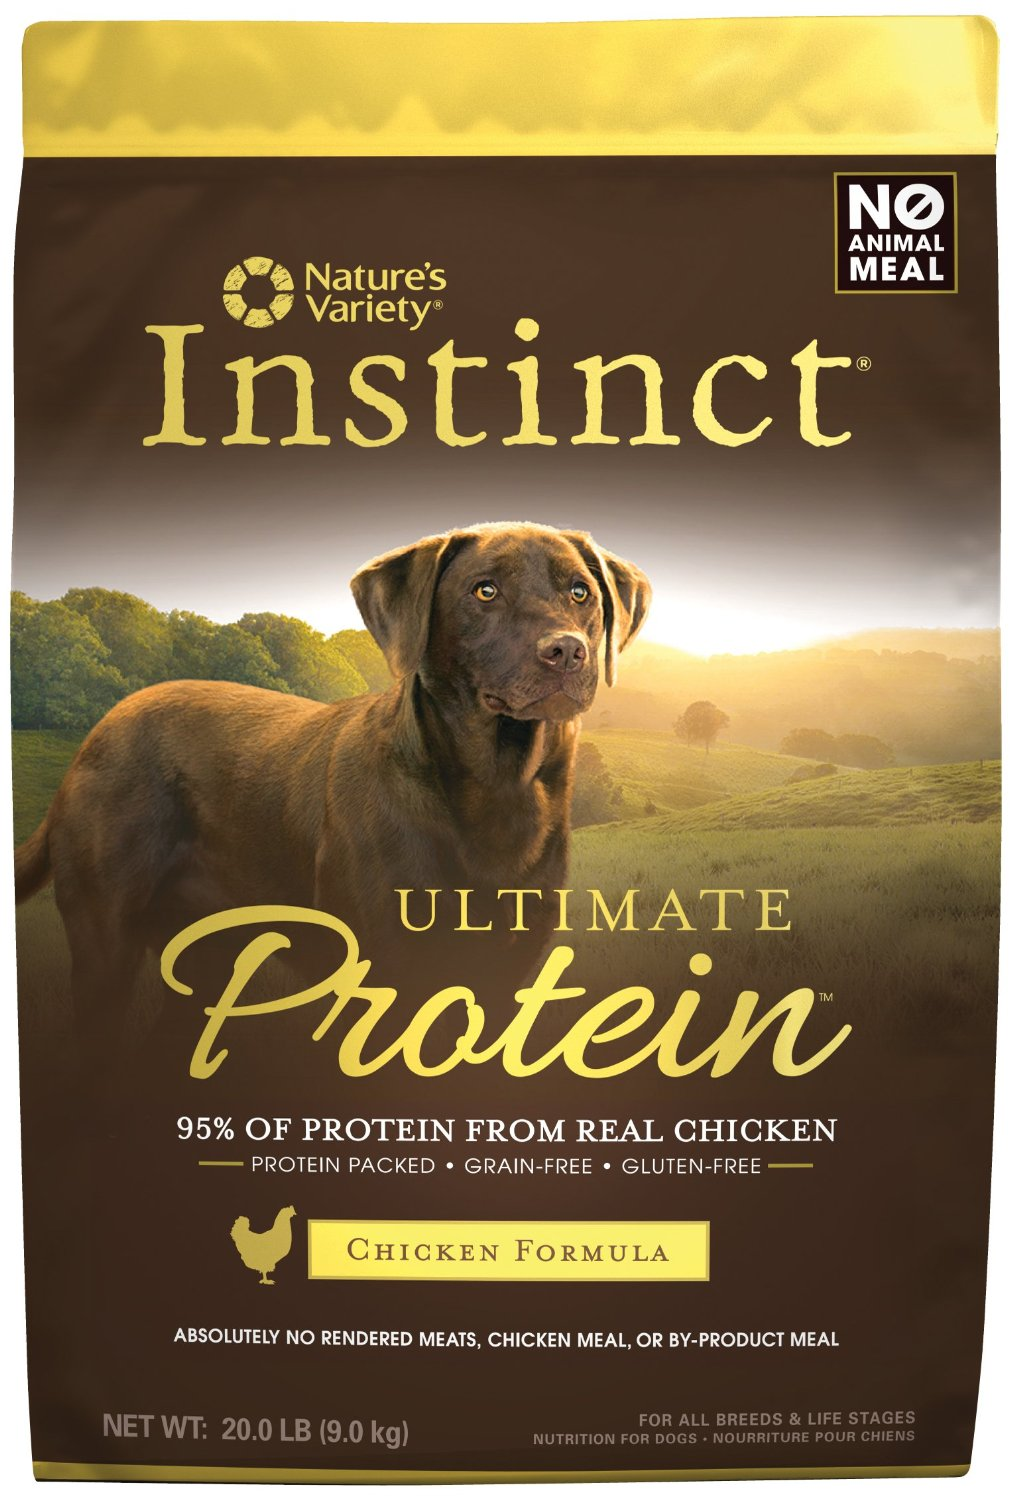 Nature's Variety Instinct Ultimate Protein Kibble for Dogs